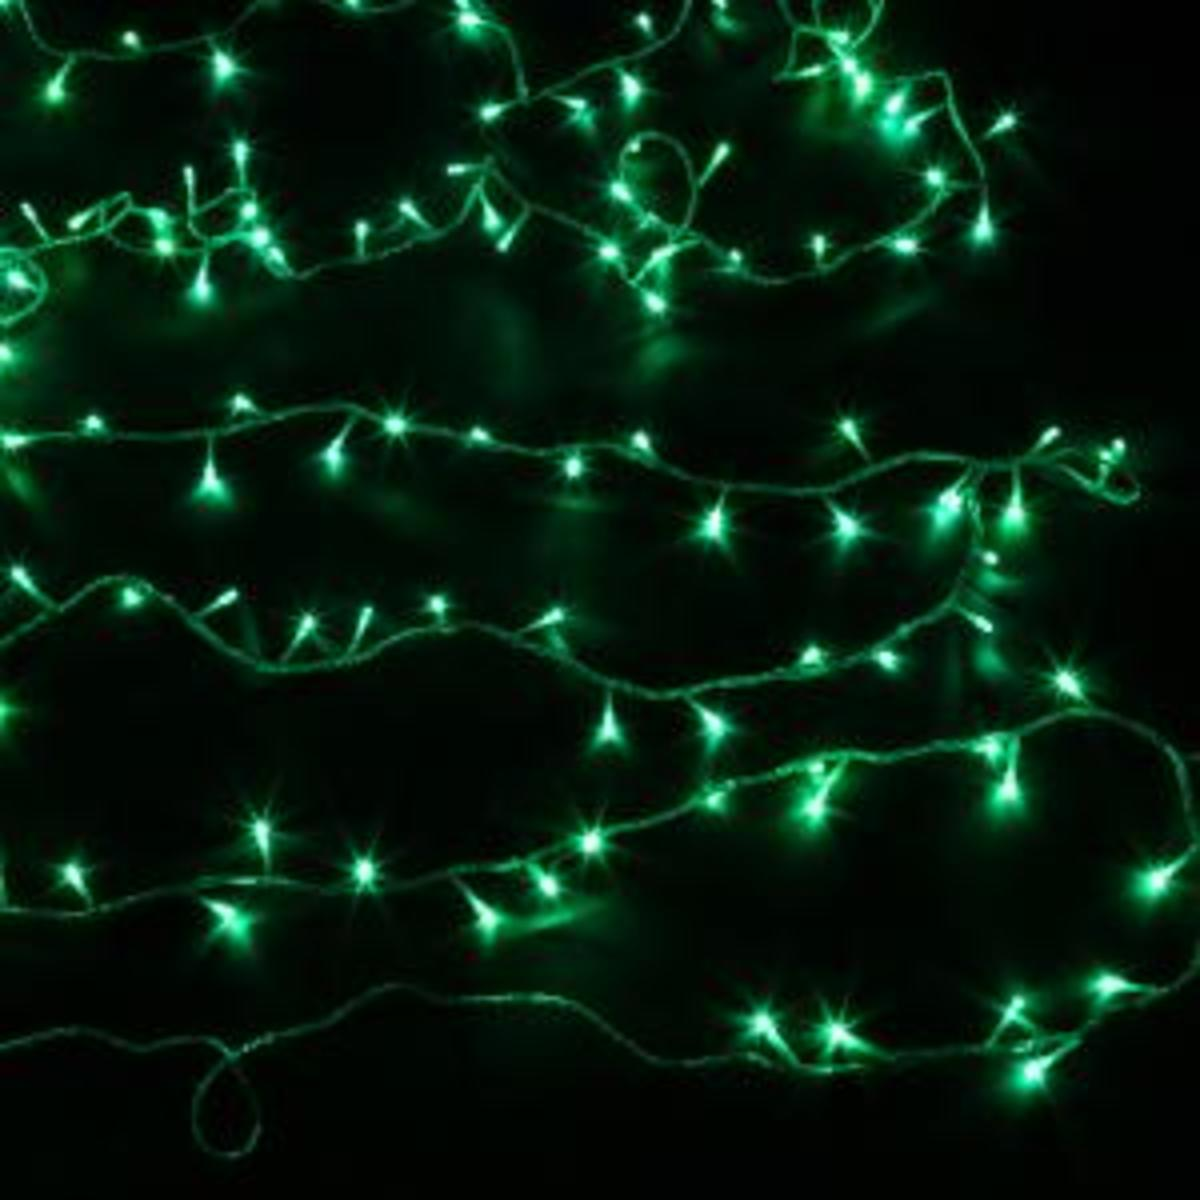 green christmas light 8 10 from 27 votes green christmas light 4 10 8swcfid2